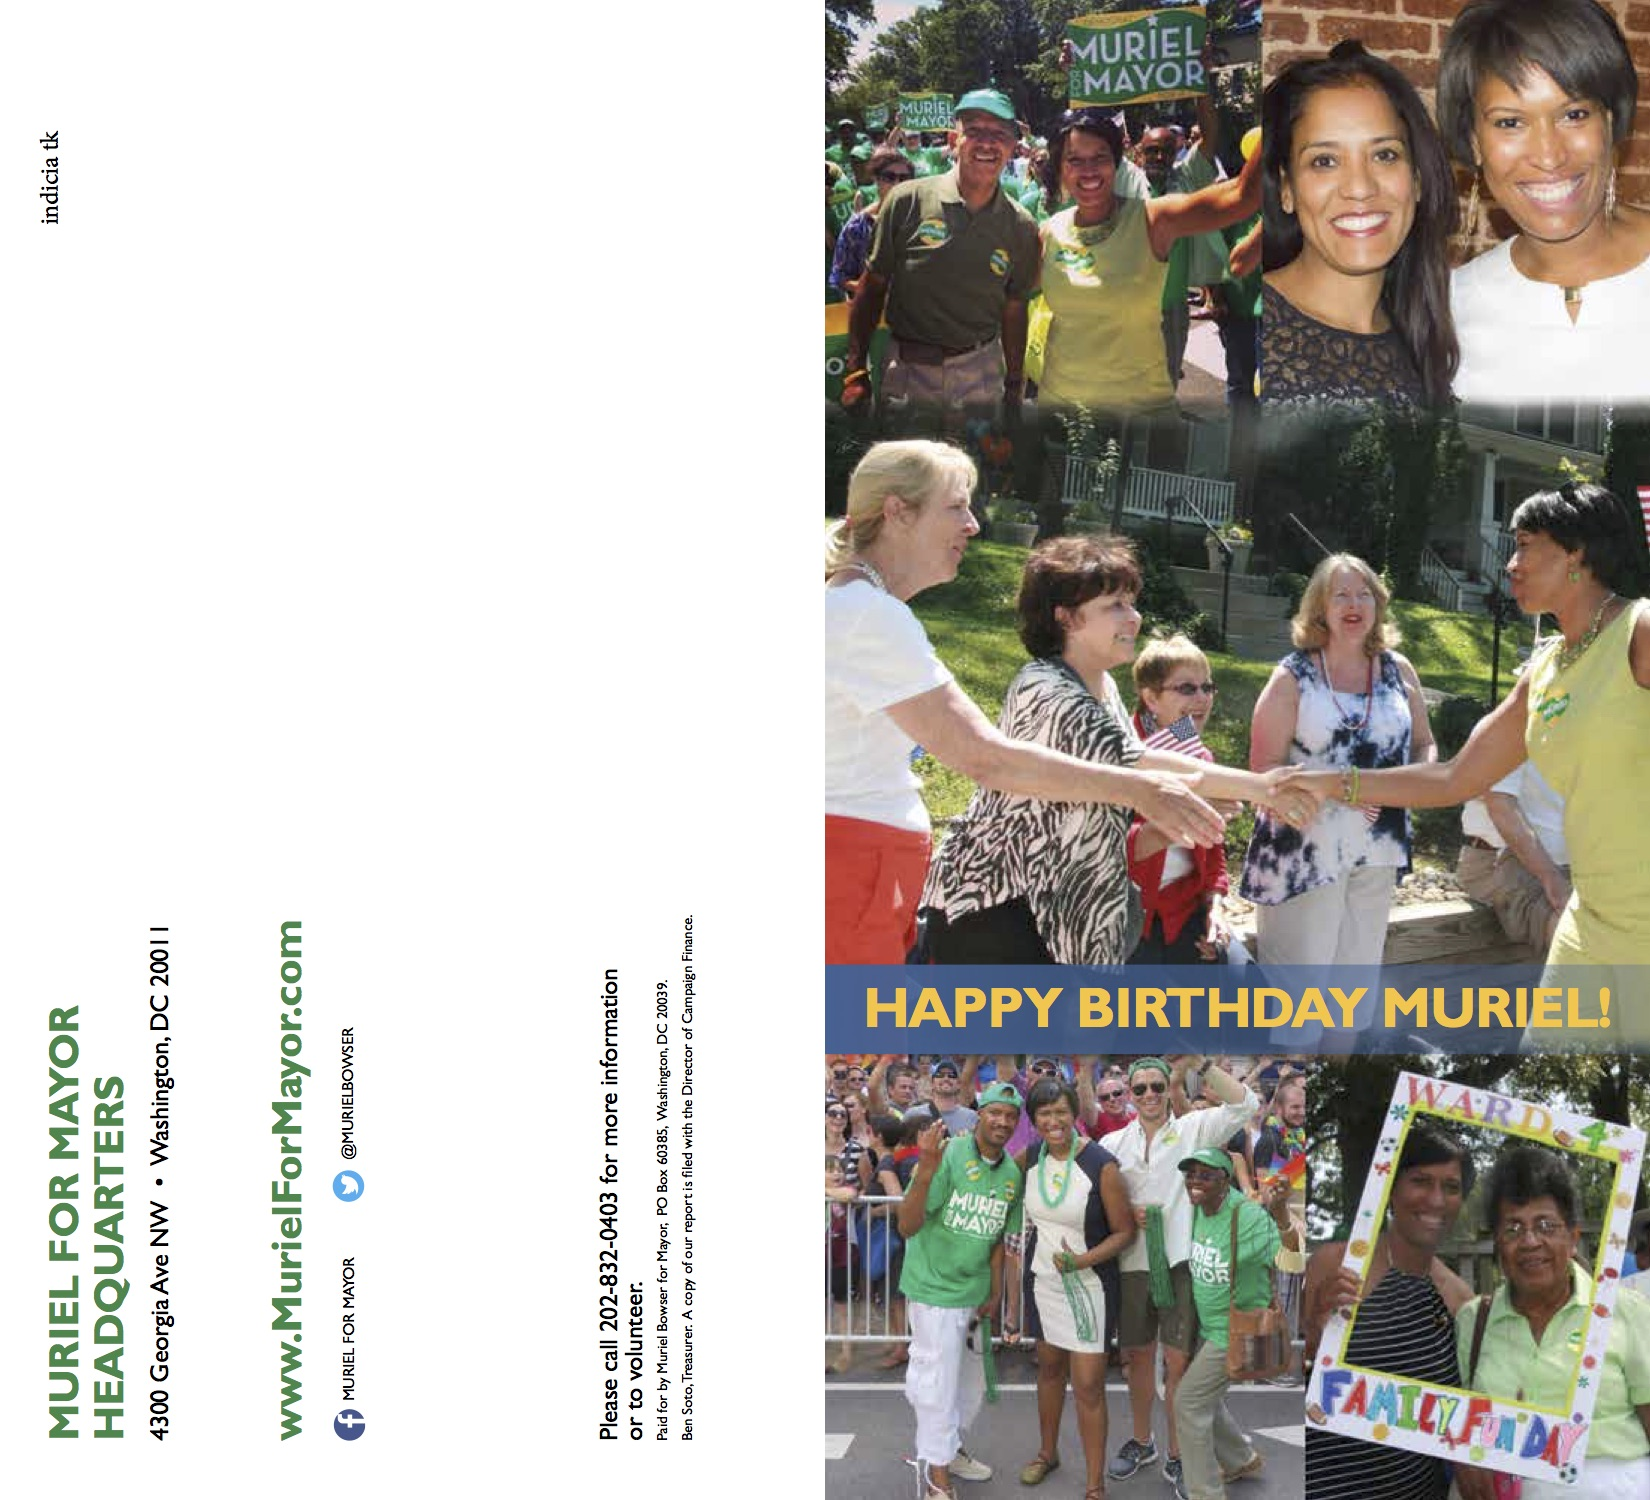 MB_birthday_card_FD-lowres.jpg